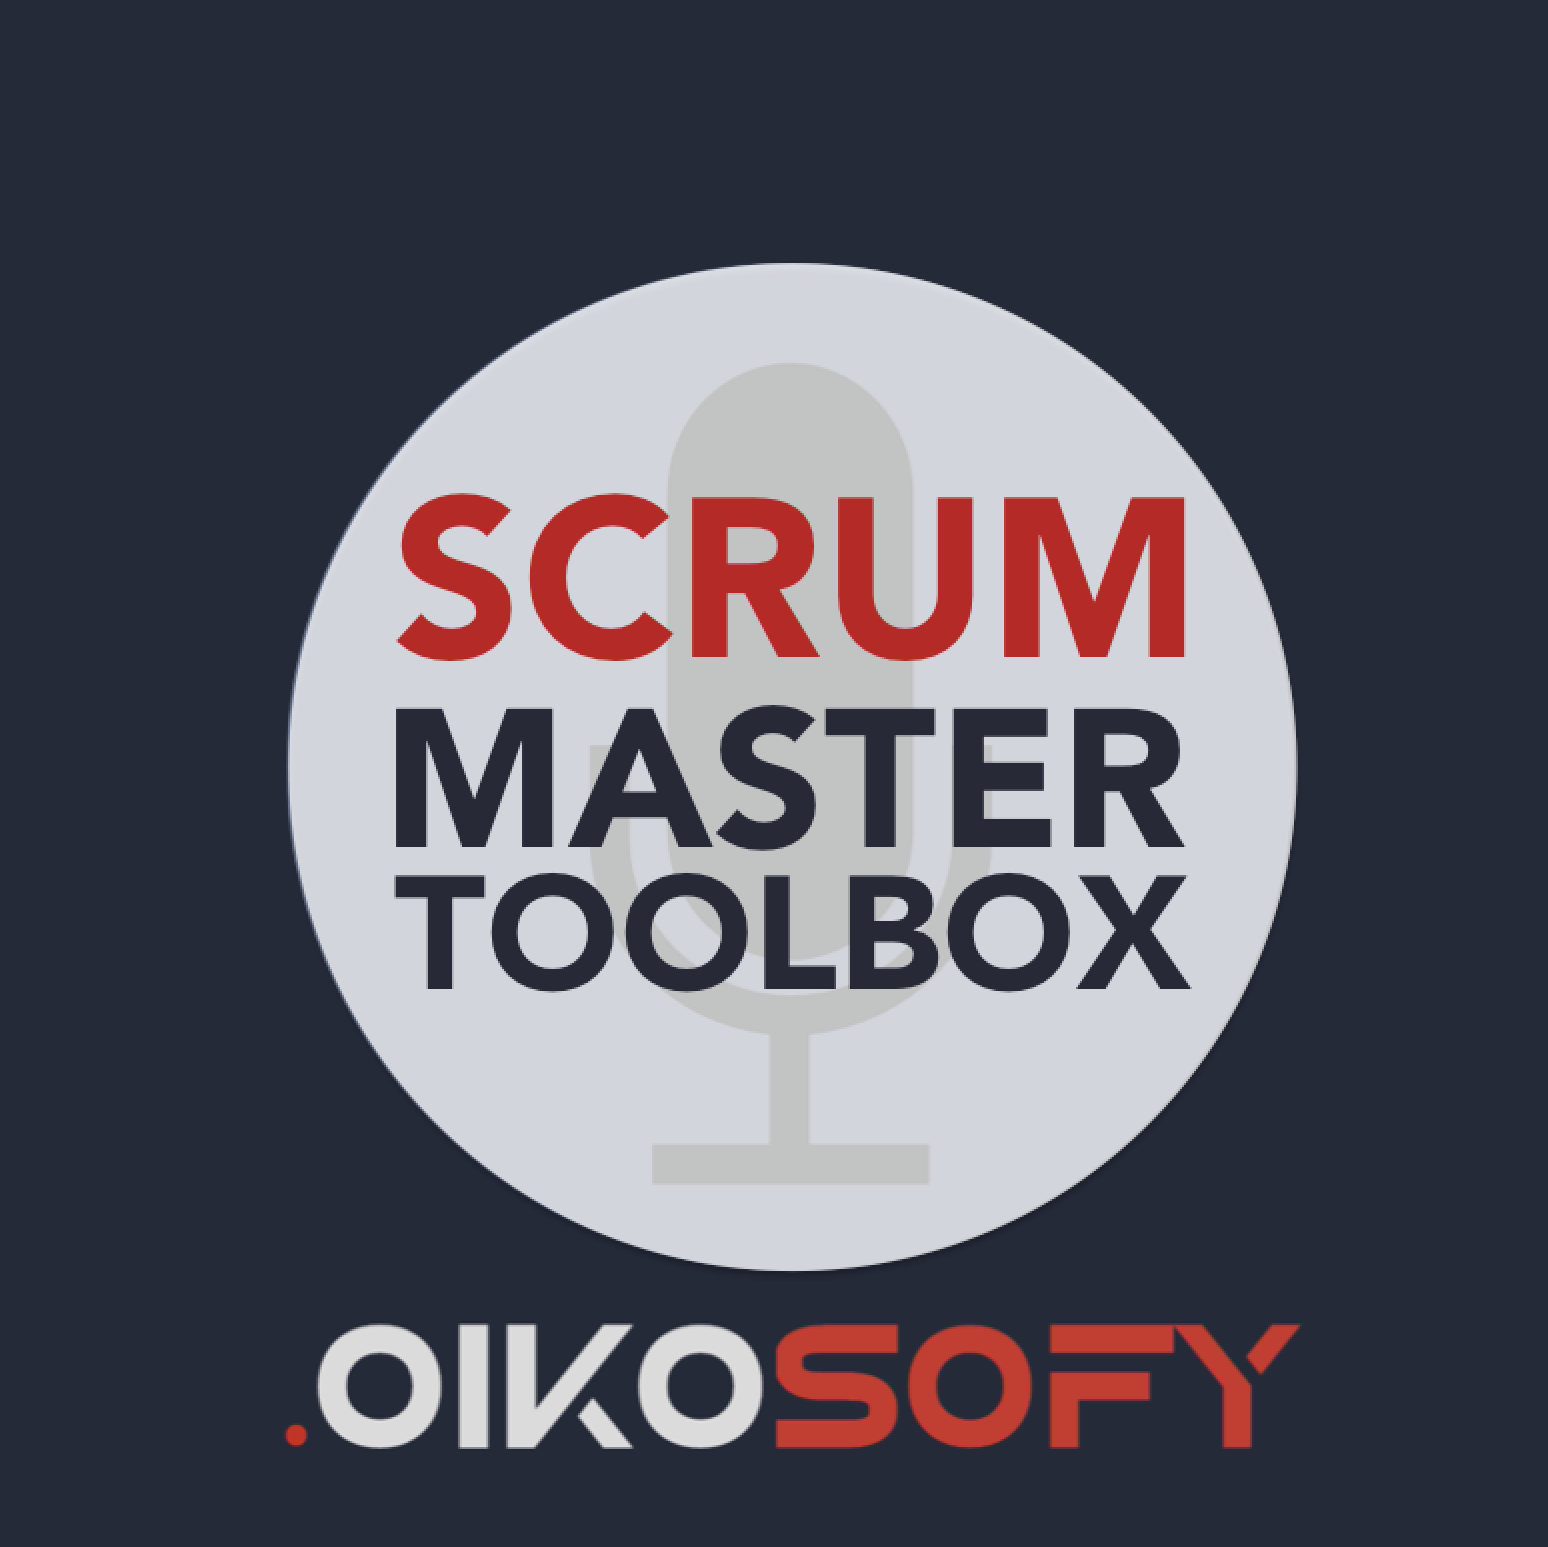 scrum master toolbox podcast with ben aston